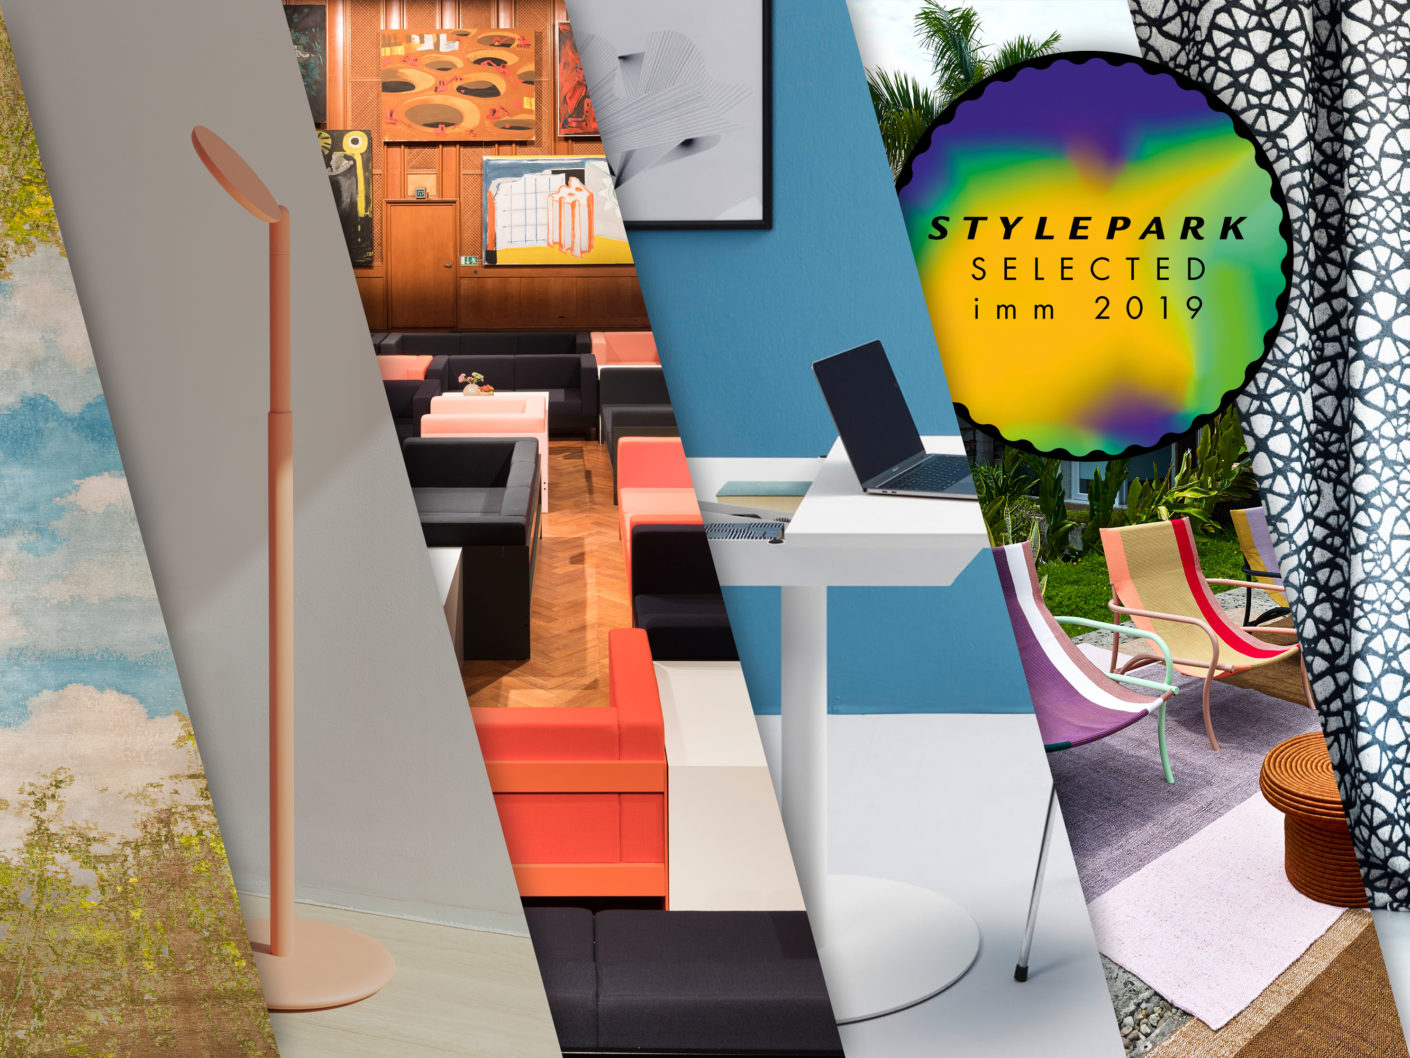 Top Stylepark Selected imm 2019